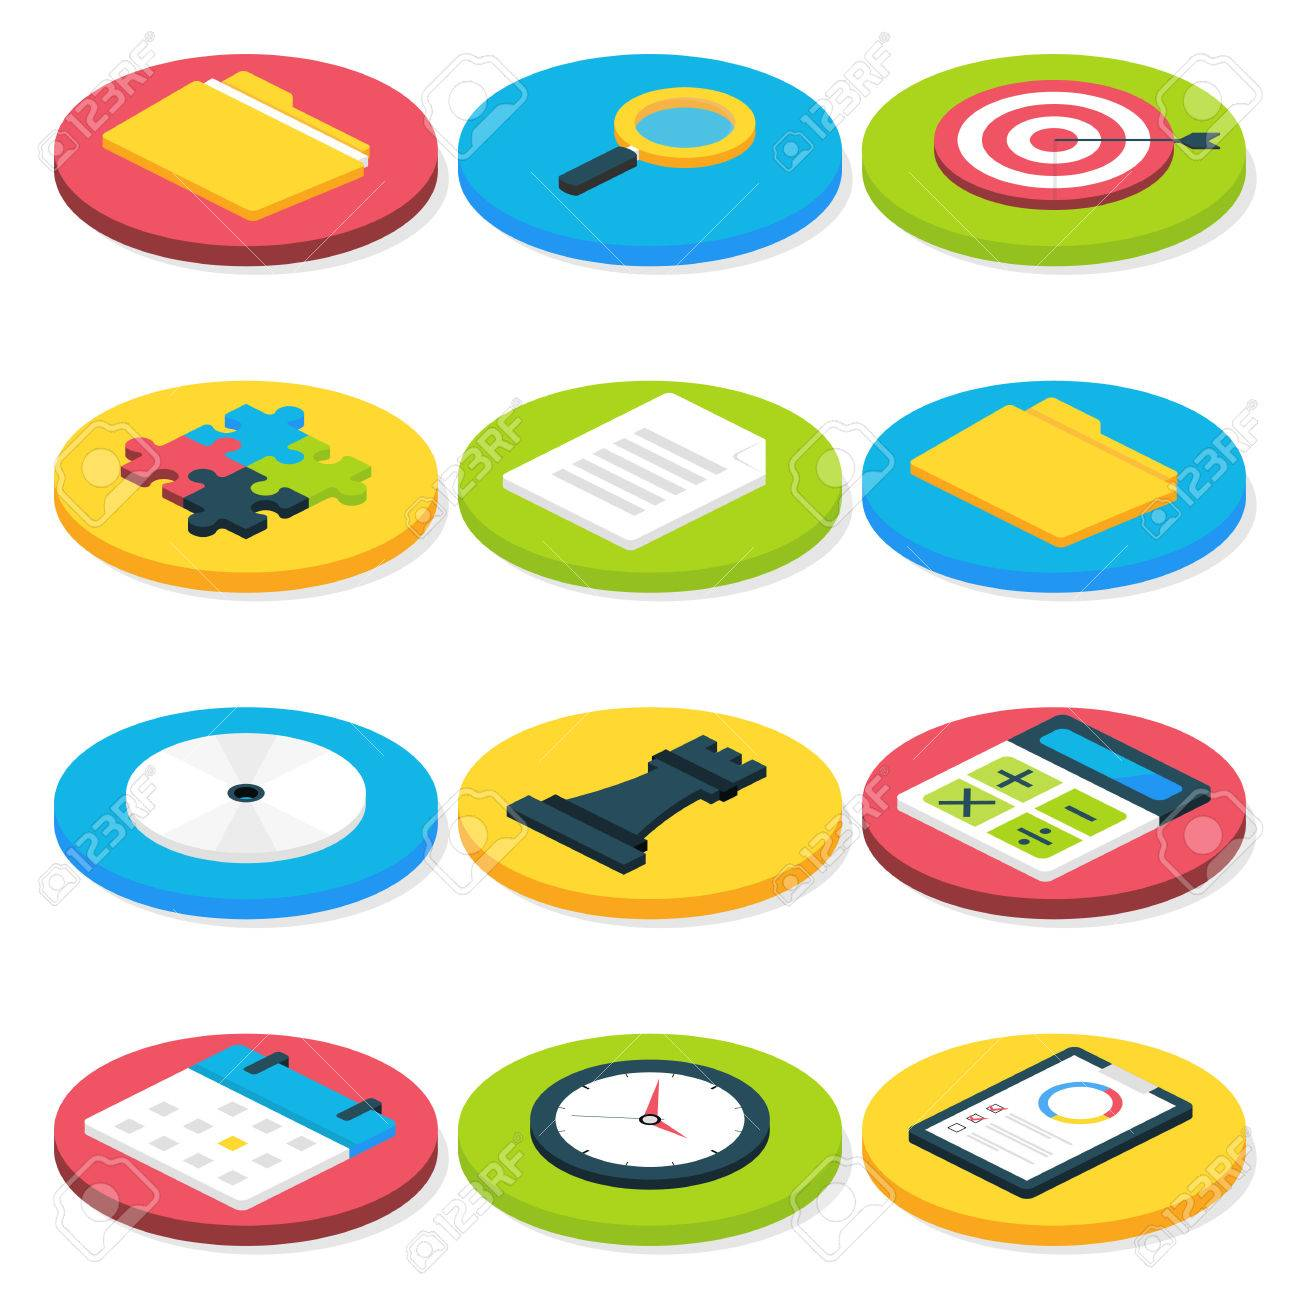 flat isometric circle business icons set vector business concepts and office life icons set stock business concepts business life office